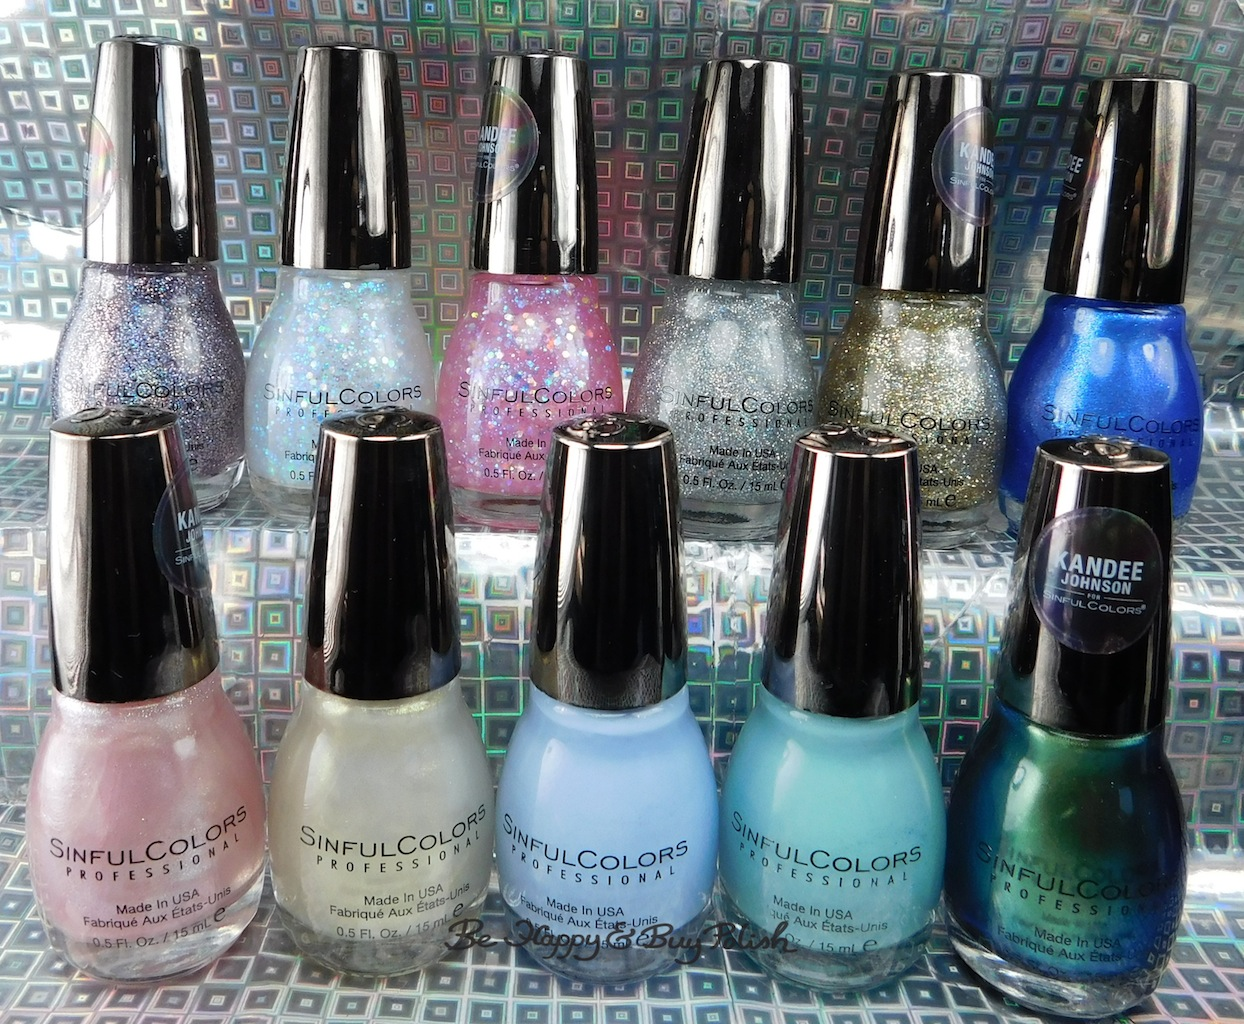 Sinful Colors Kandee Johnson Vintage Anime Nail Polish Collection Swatches + Review | Be Happy ...